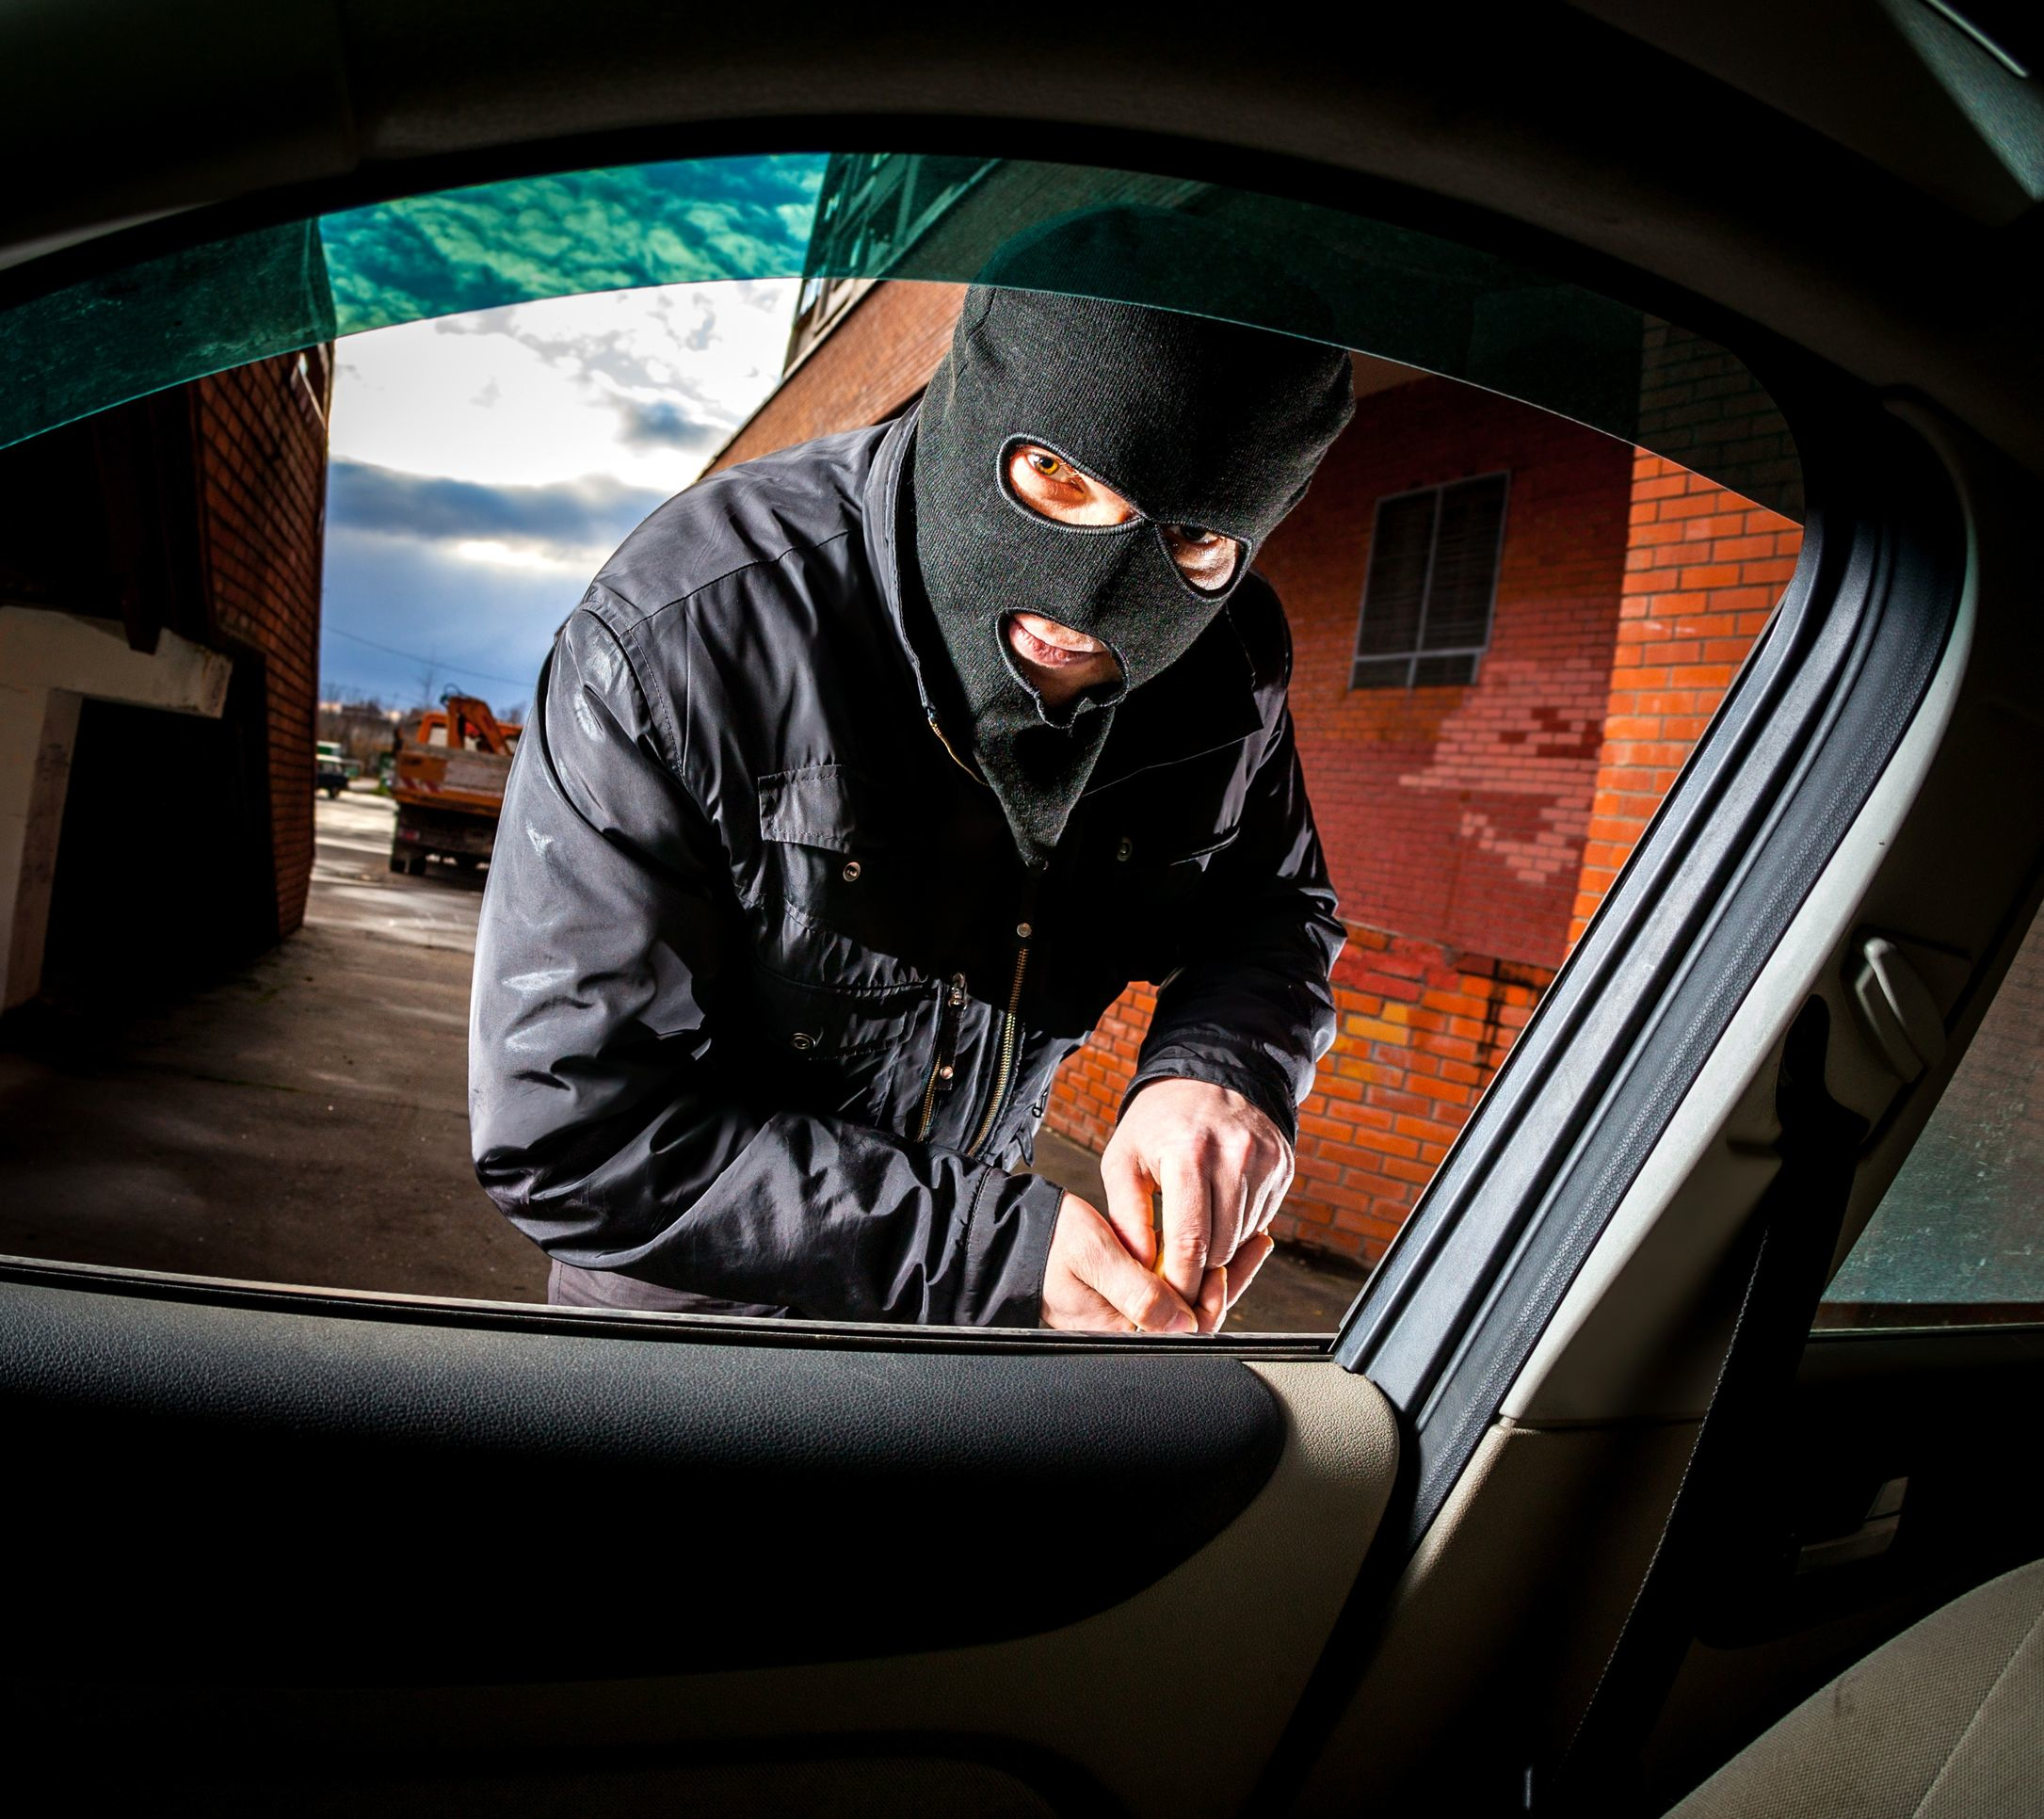 Vehicle Theft In California Down 48 Percent From Peak